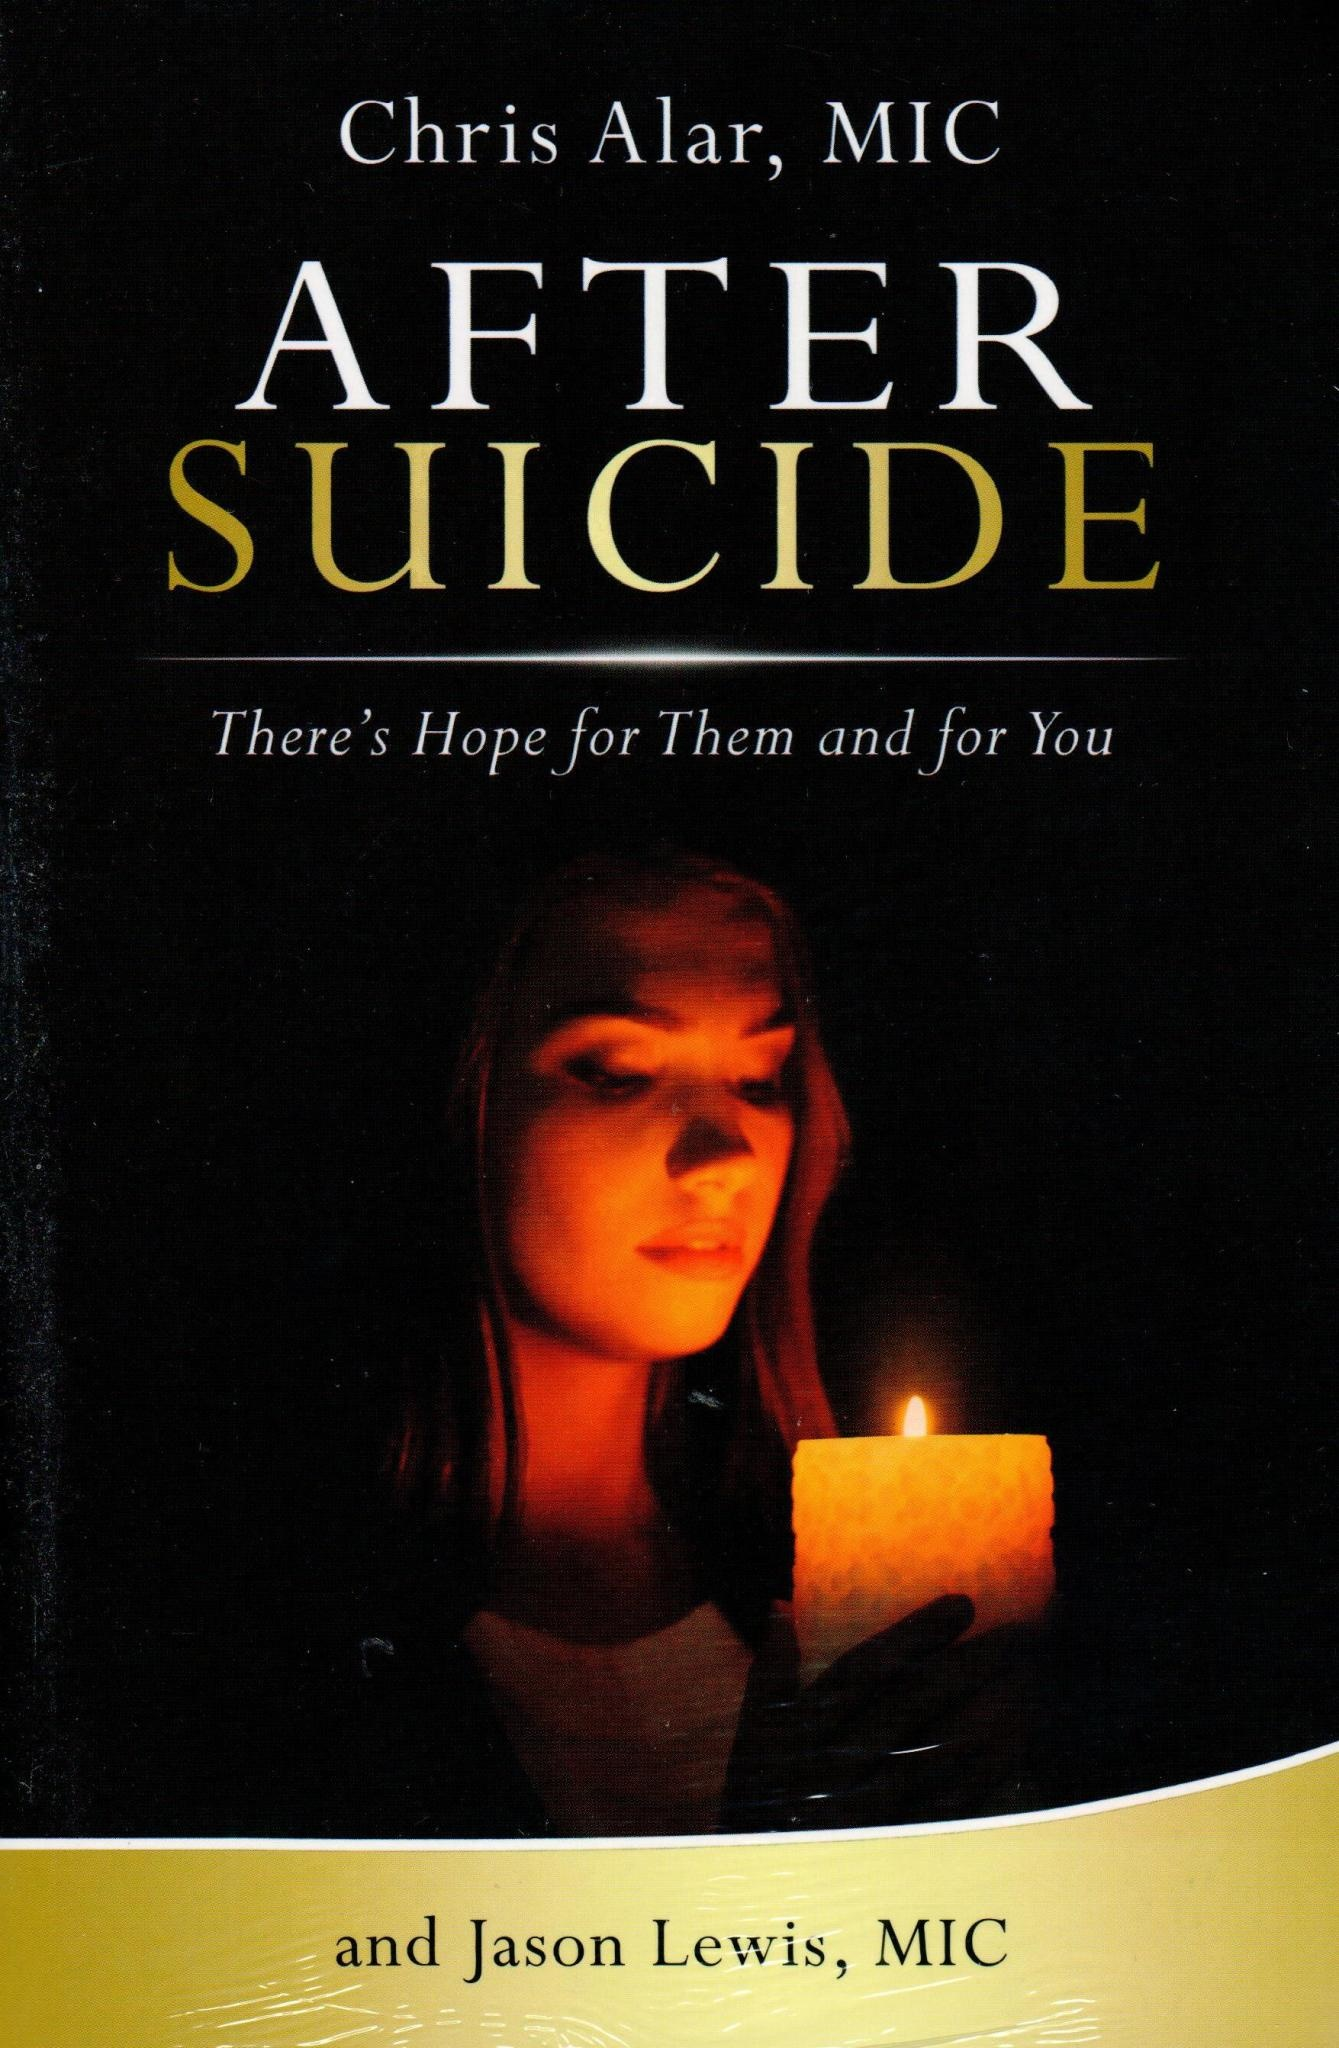 After Suicide: There's Hope for Them and for You